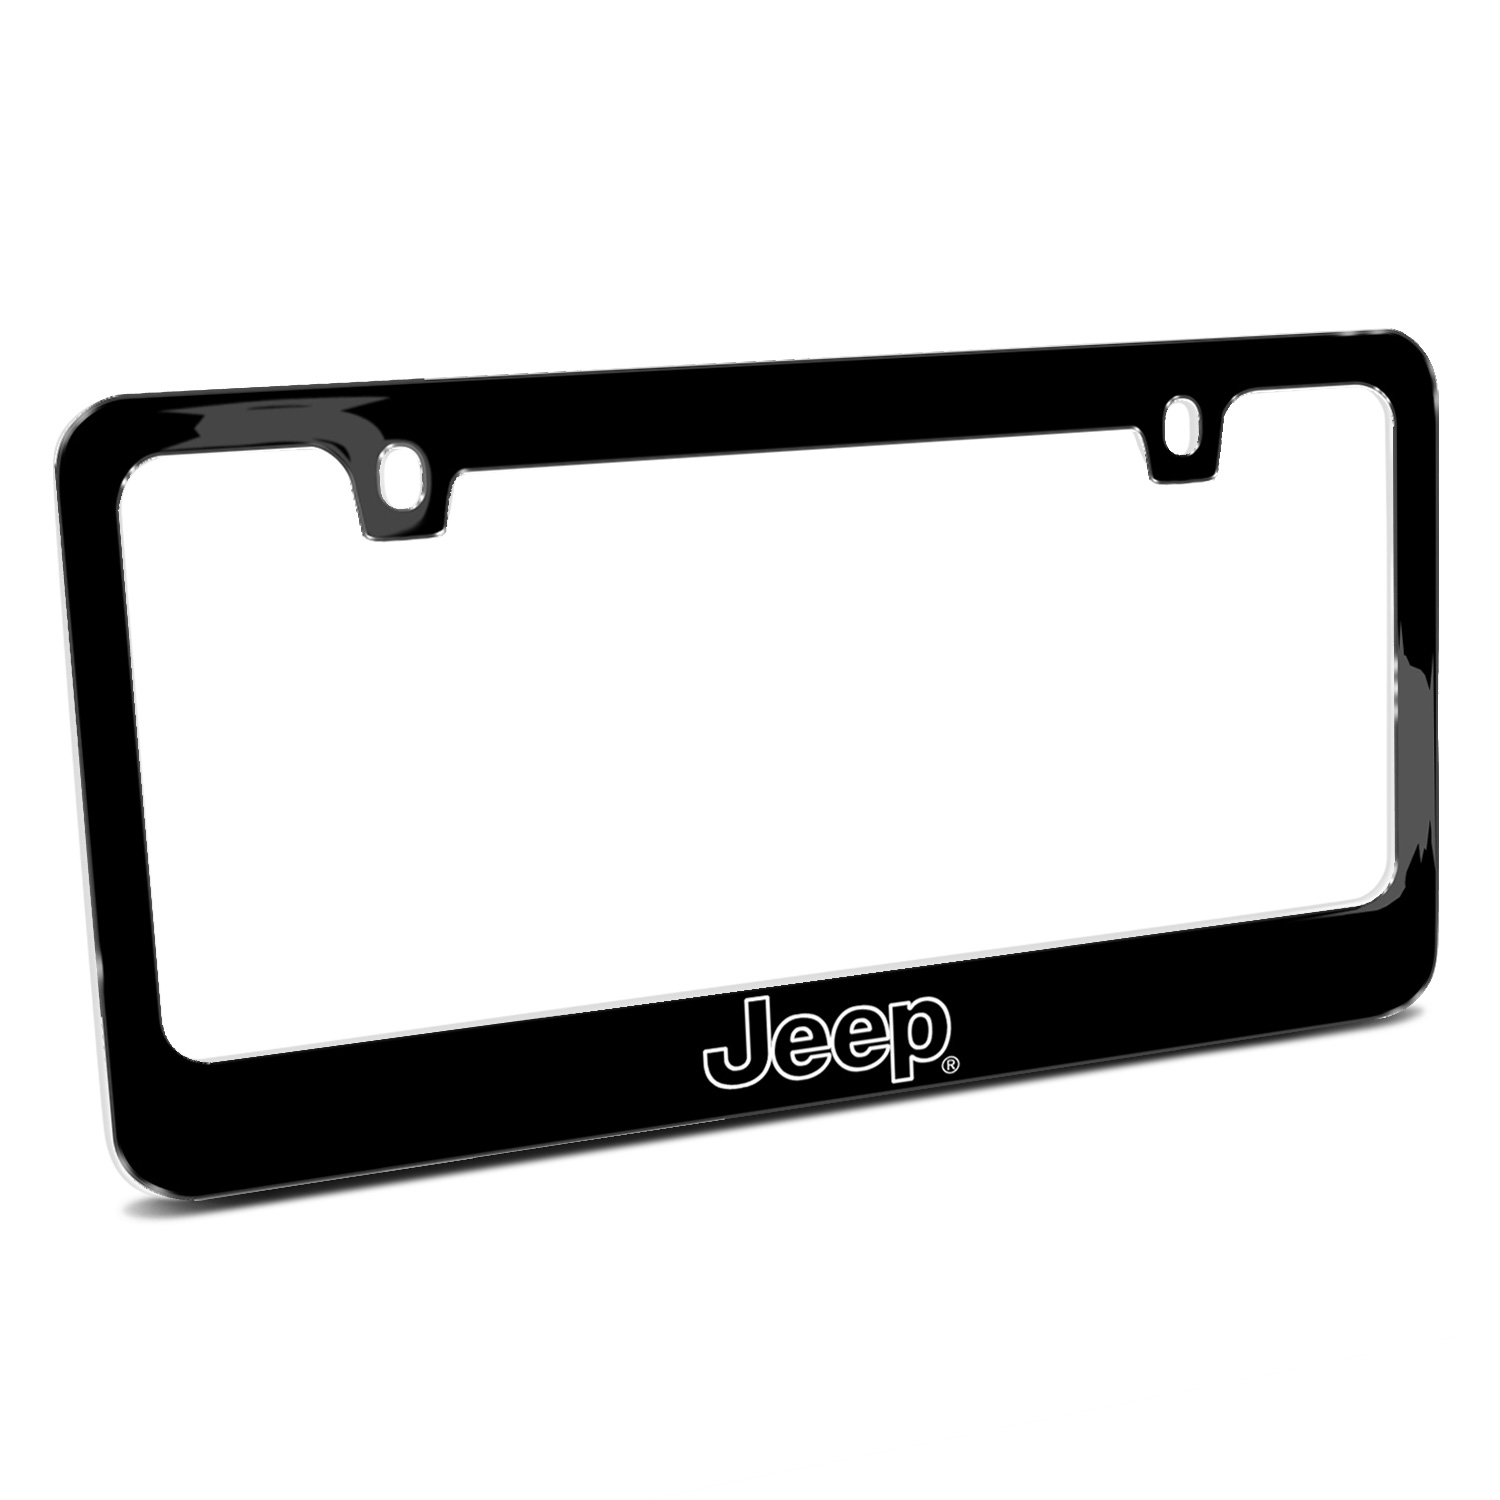 Jeep Outline Black Metal License Plate Frame